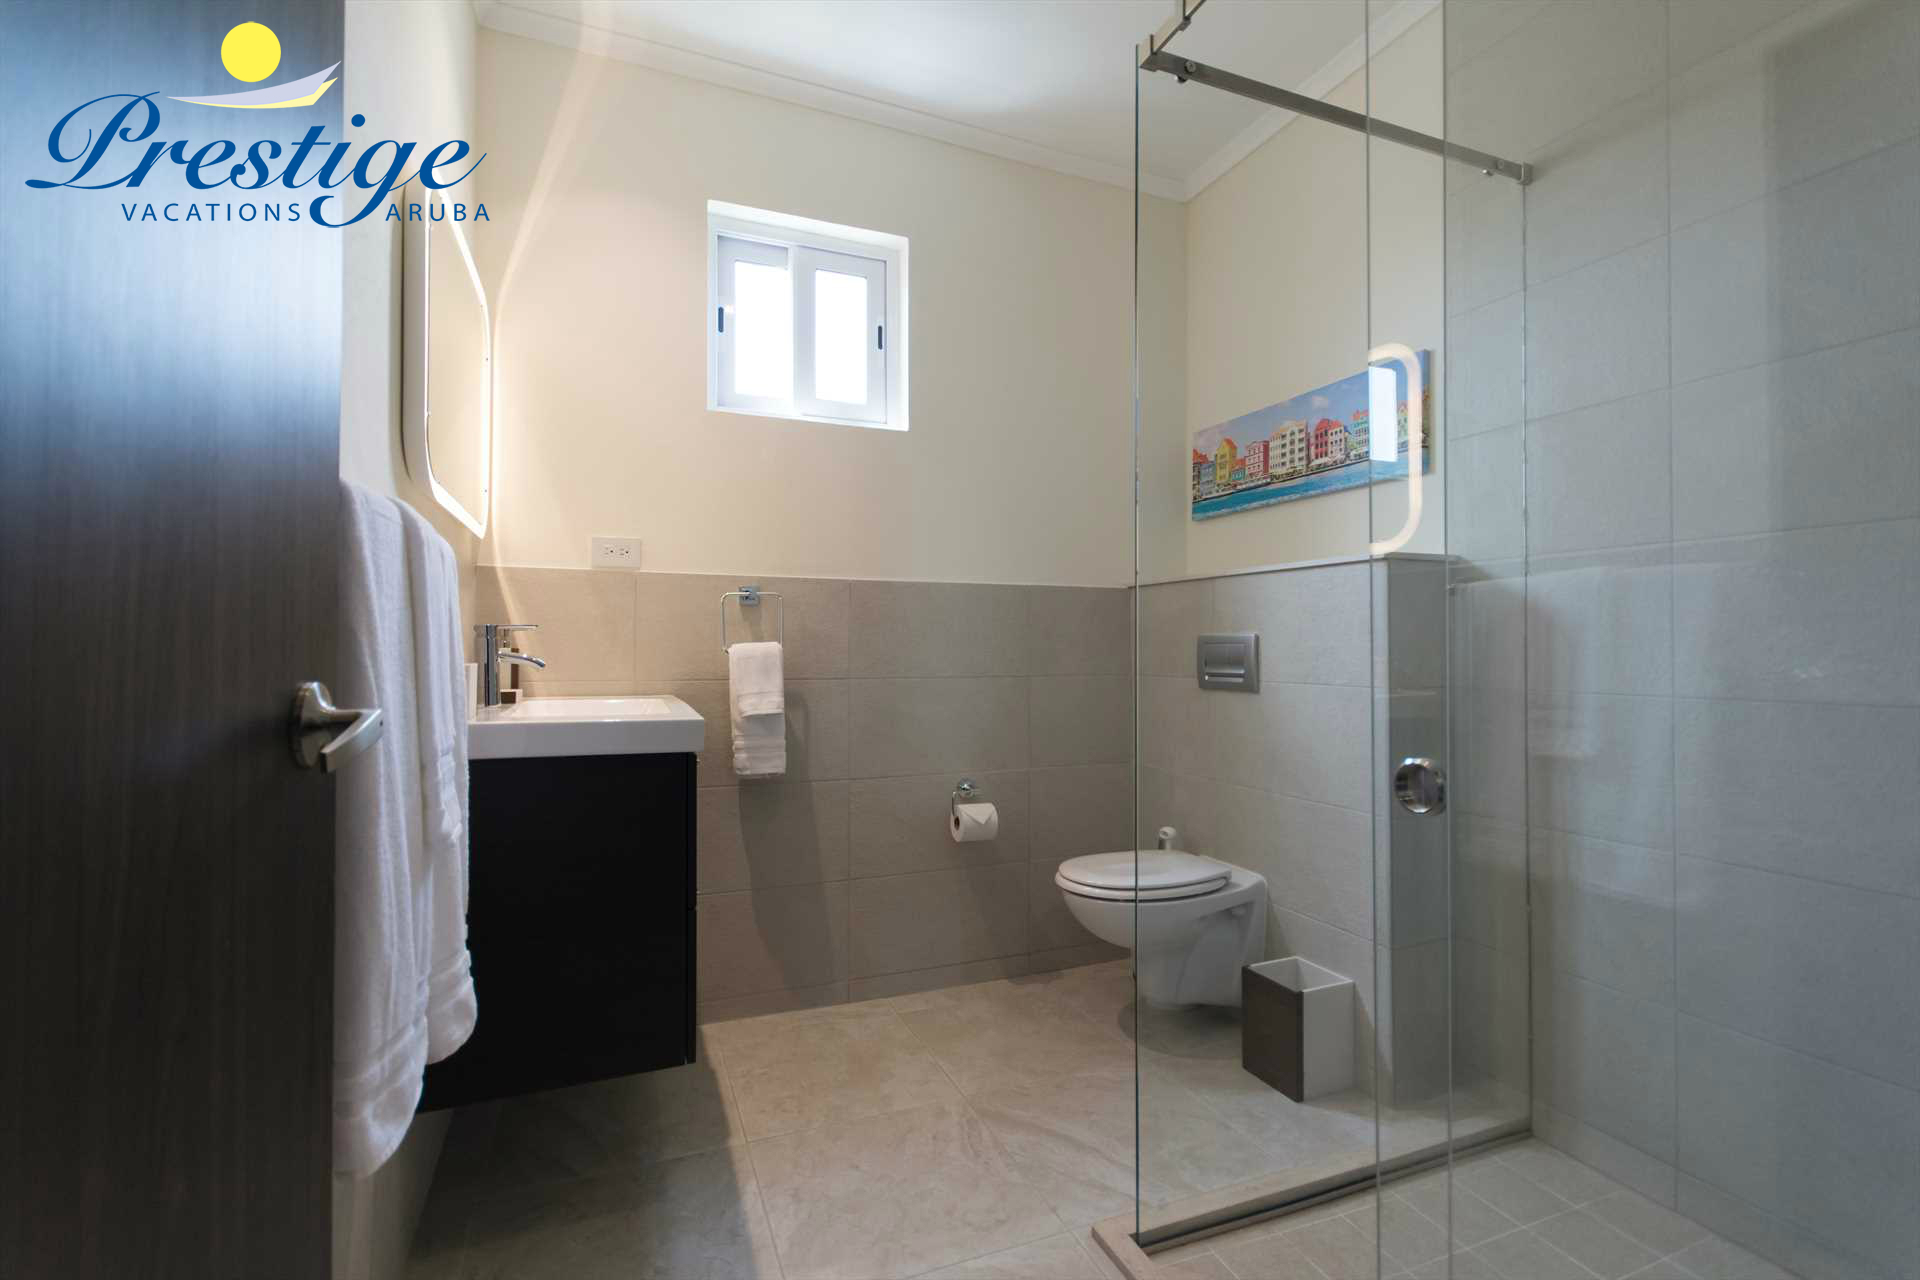 The master en-suite bathroom with a large shower